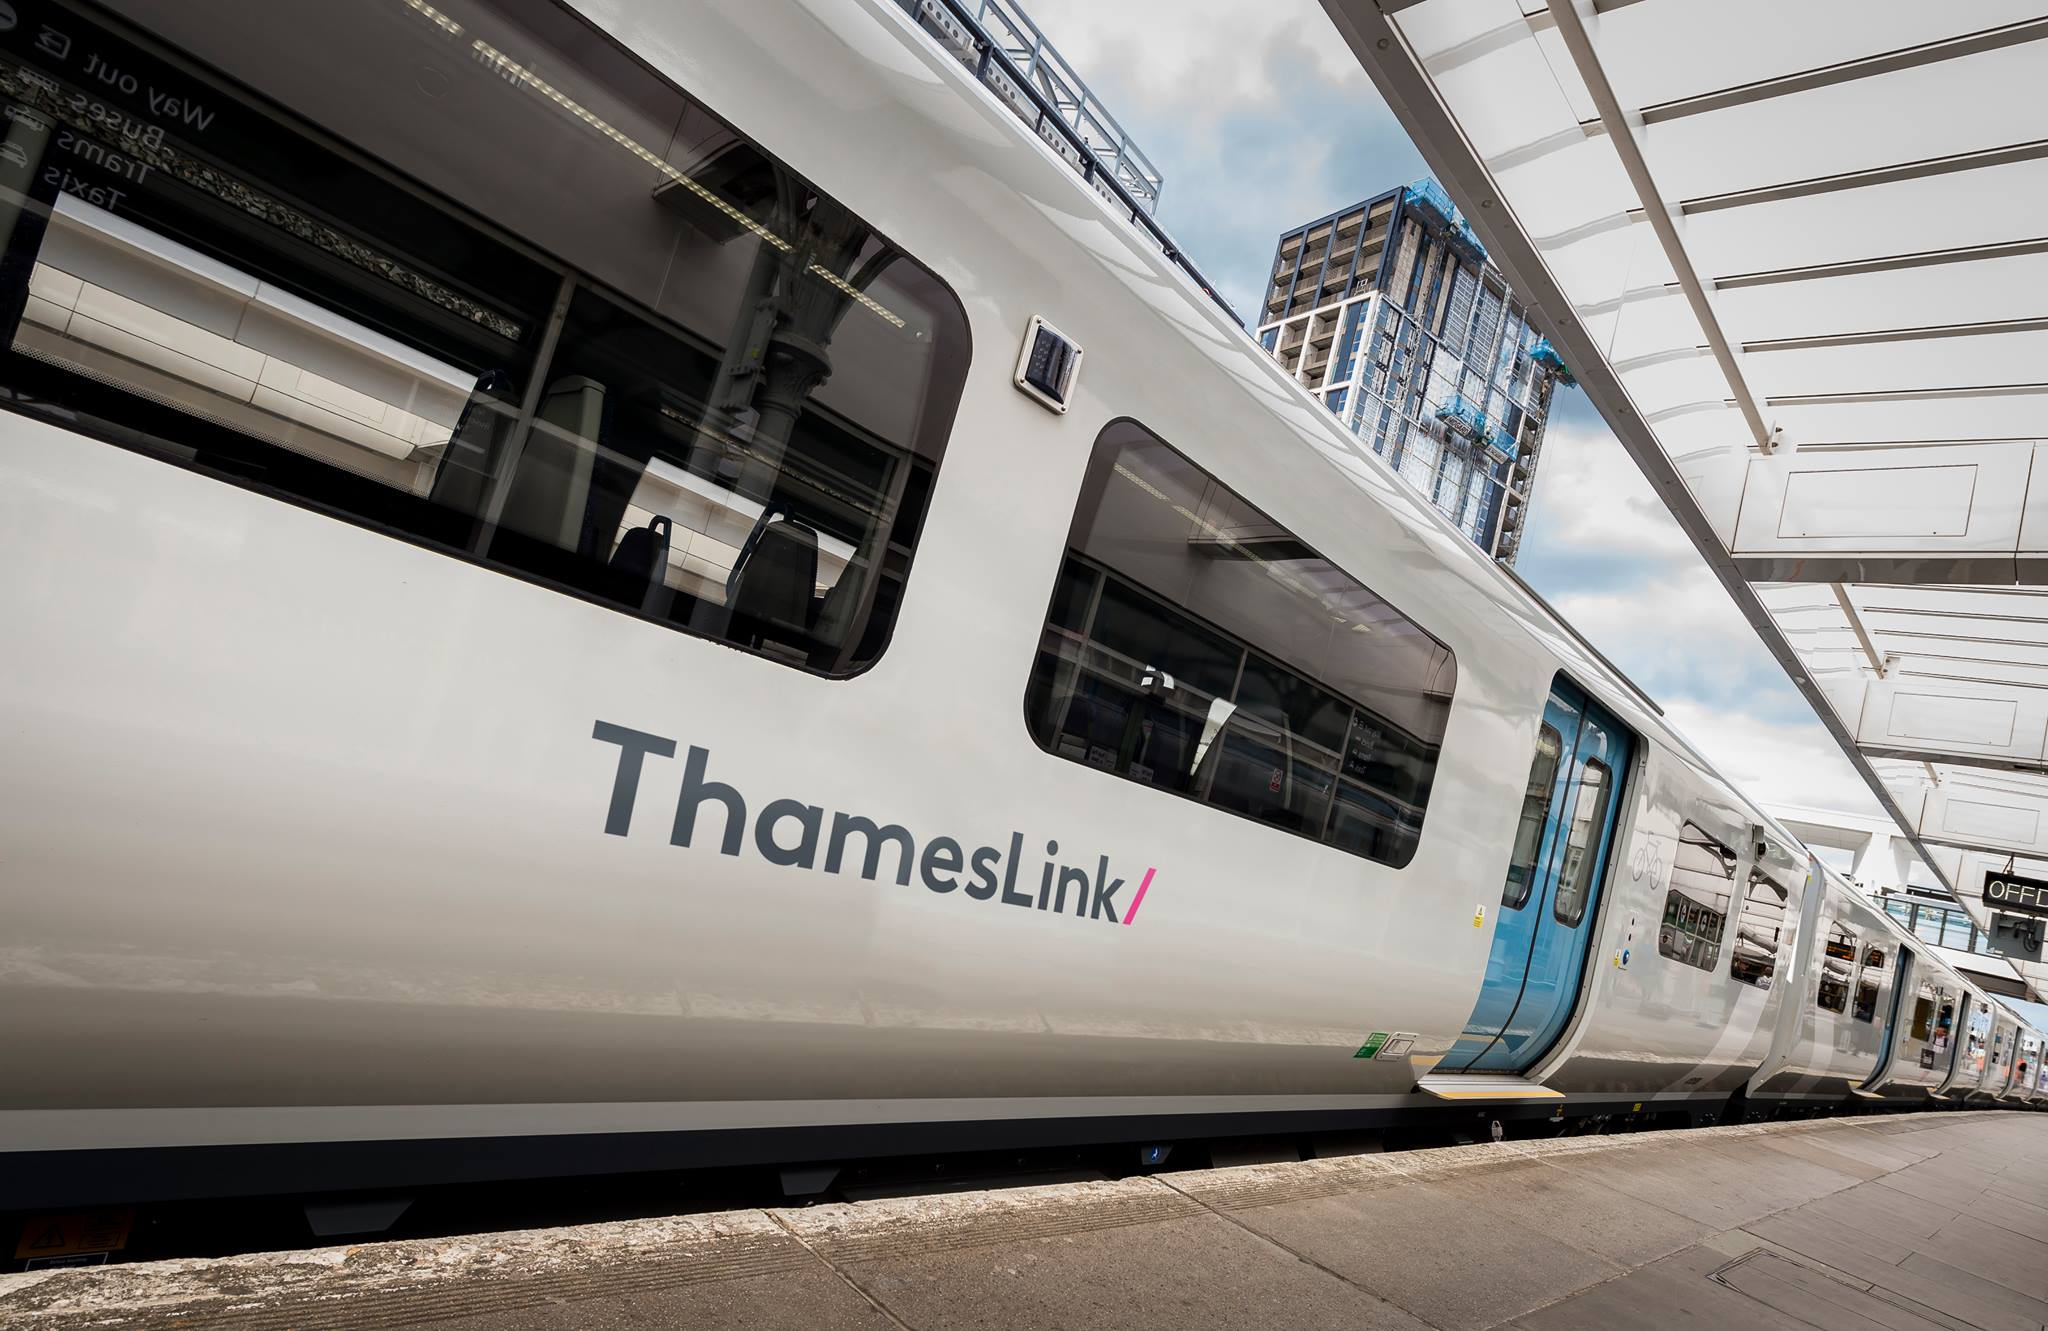 Buy Train Tickets | Book Train Tickets Online | Thameslink